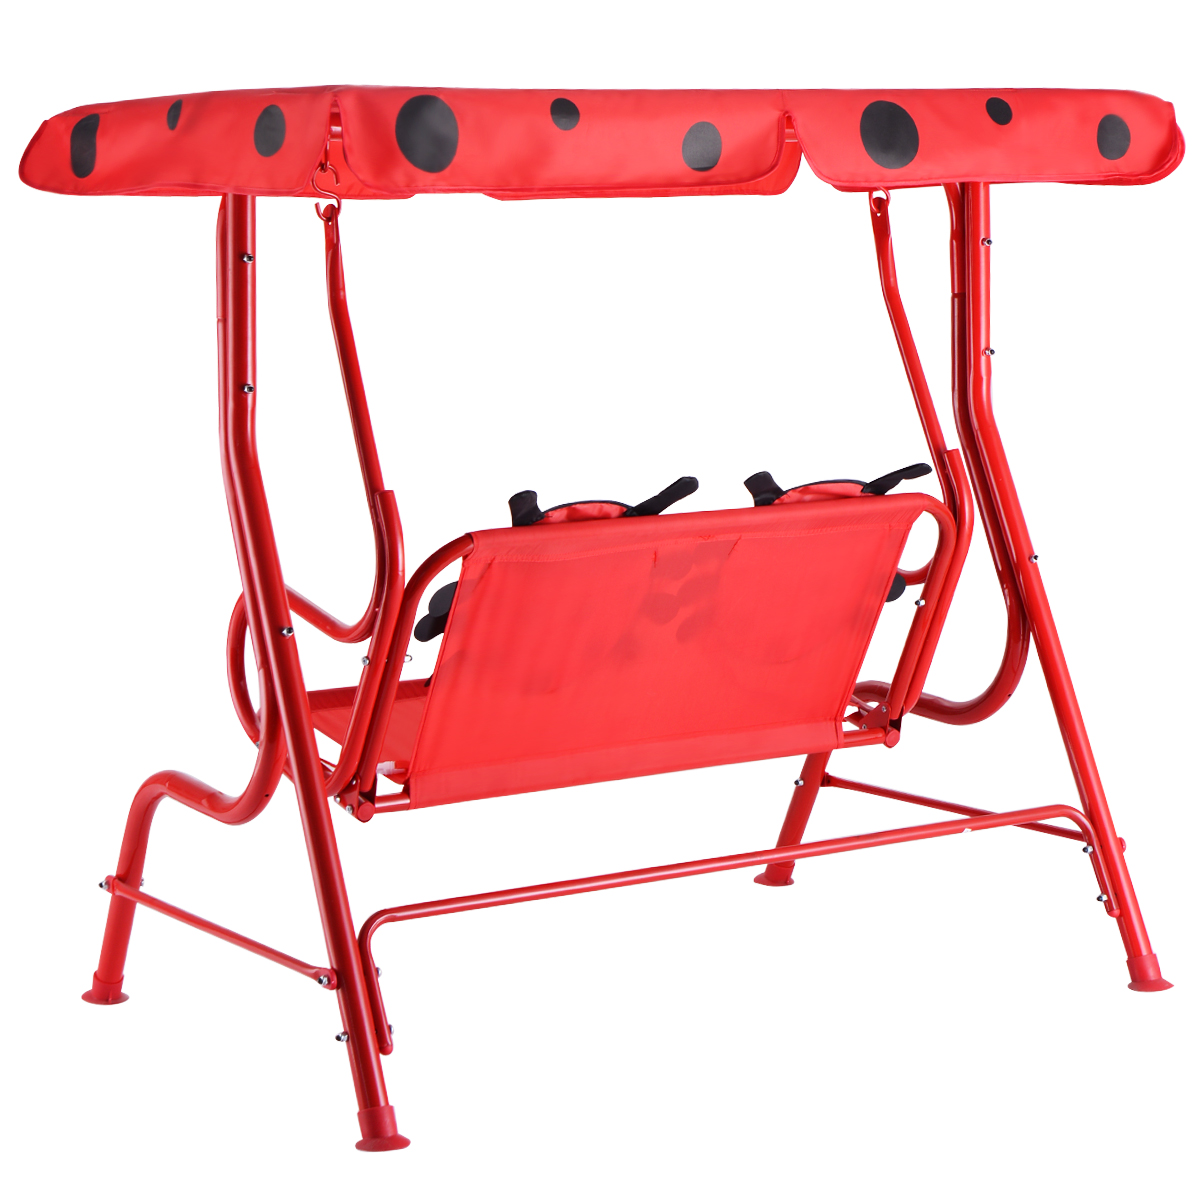 Kids Patio Swing Chair Children Porch Bench Canopy 2 Person Yard Furniture red - image 1 of 10